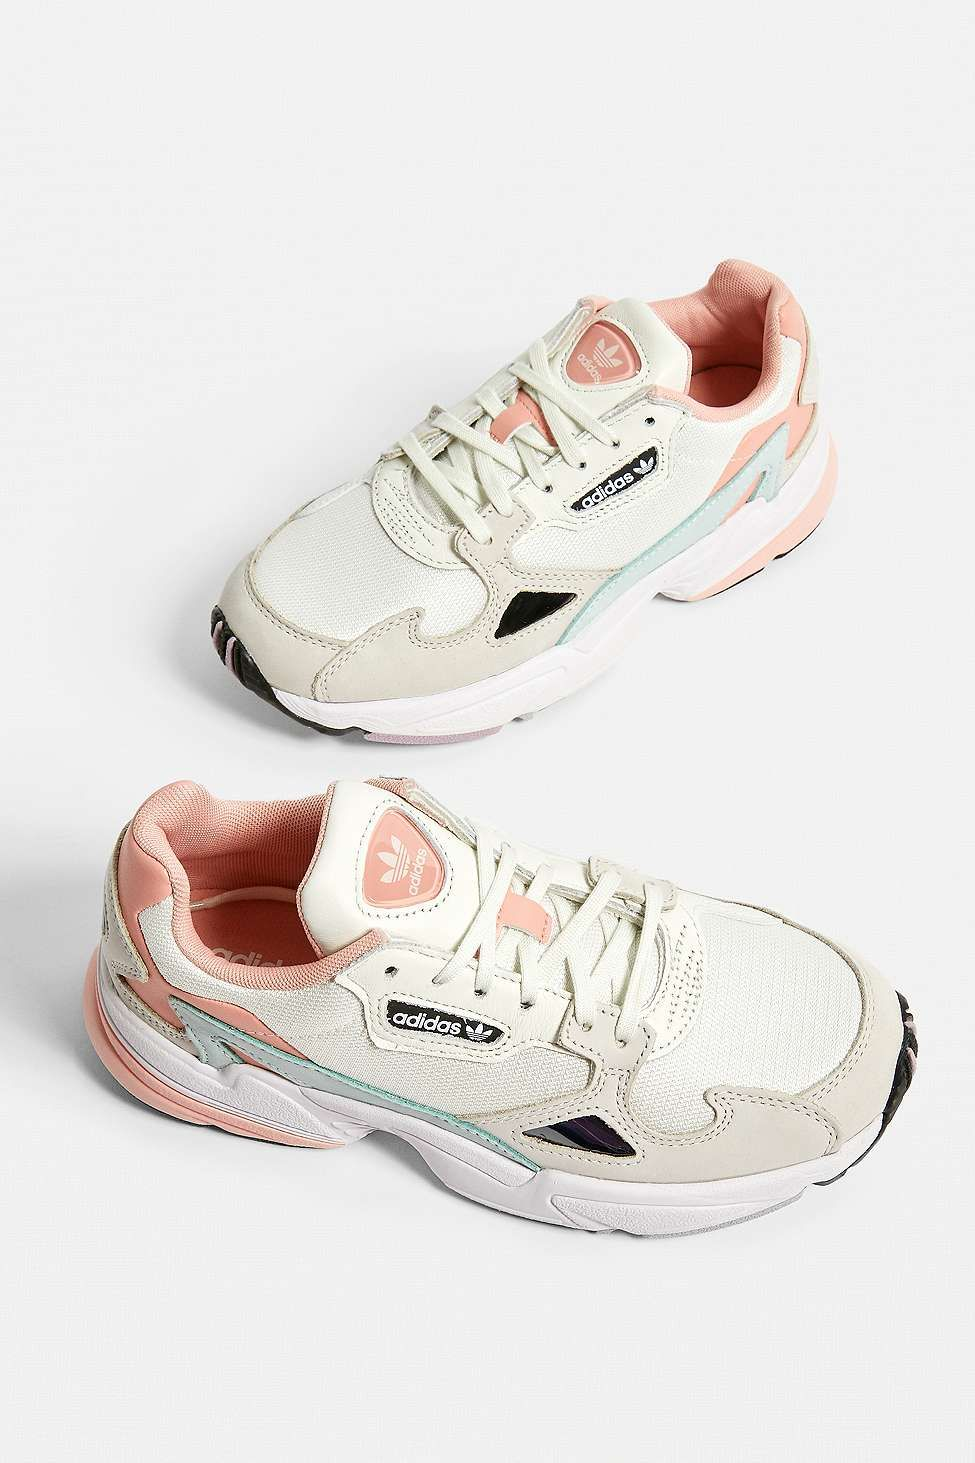 adidas Originals Falcon Pale Pink Trainers | Adidas shoes